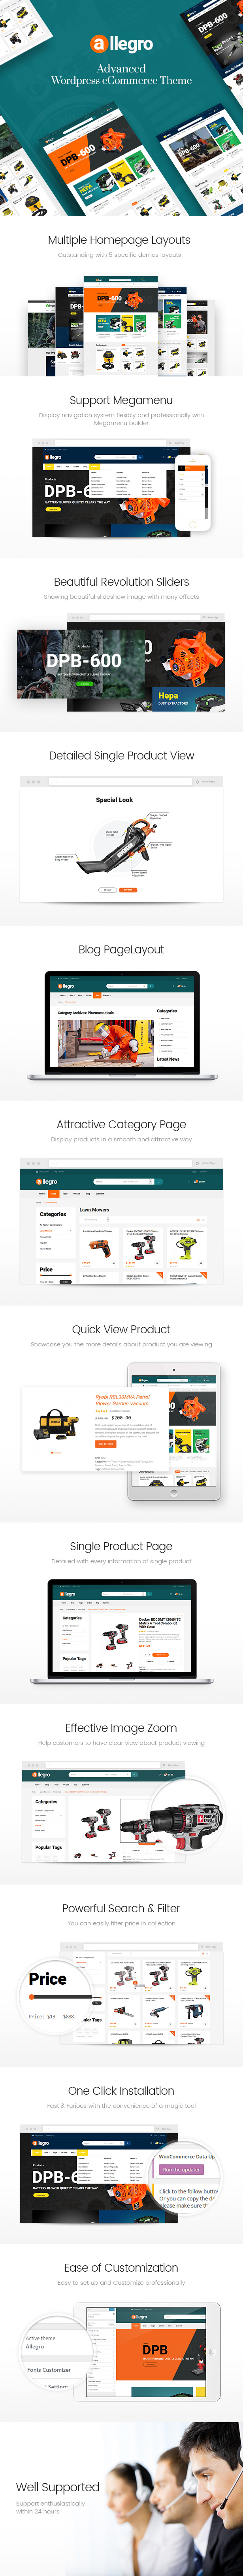 Allegro - WooCommerce WordPress Theme for Hand Tool & Equipment Stores